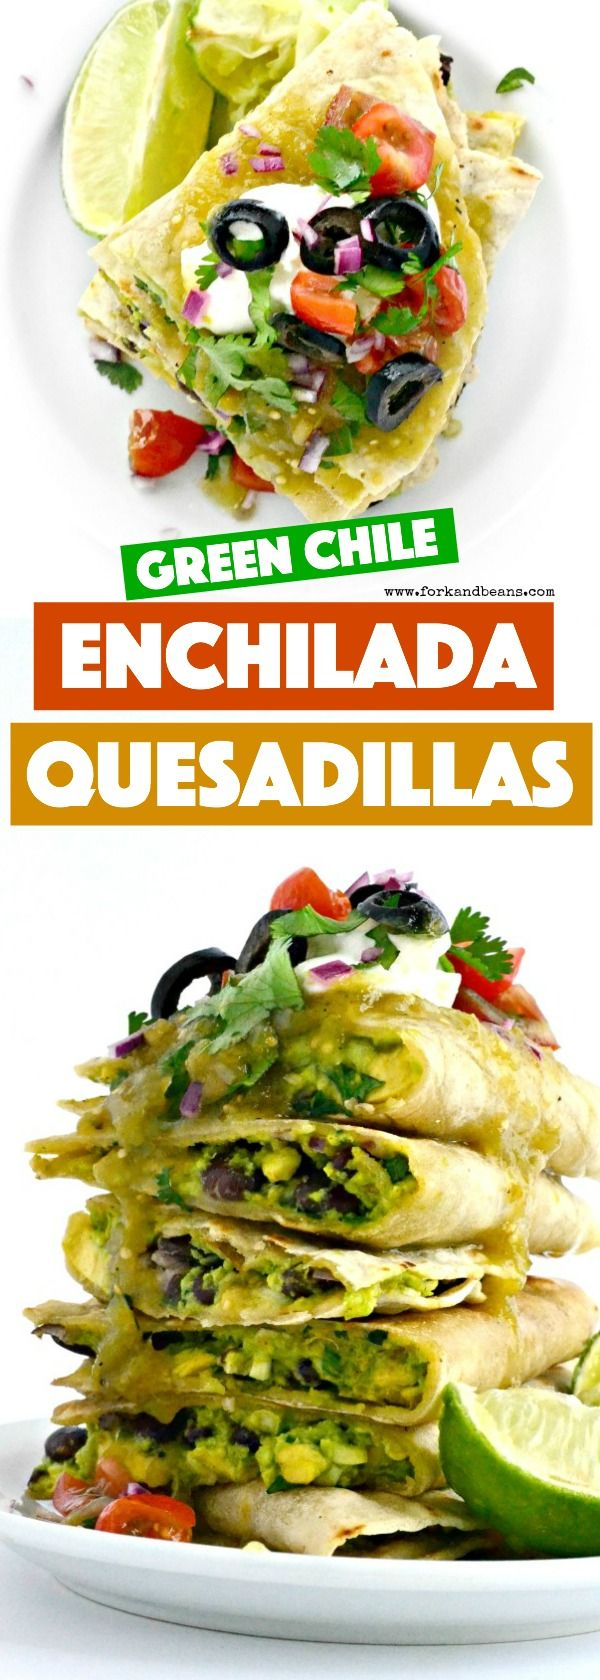 These Green Chile Enchilada Quesadillas are the perfect pairing of a gluten free enchilada and vegan quesadilla.